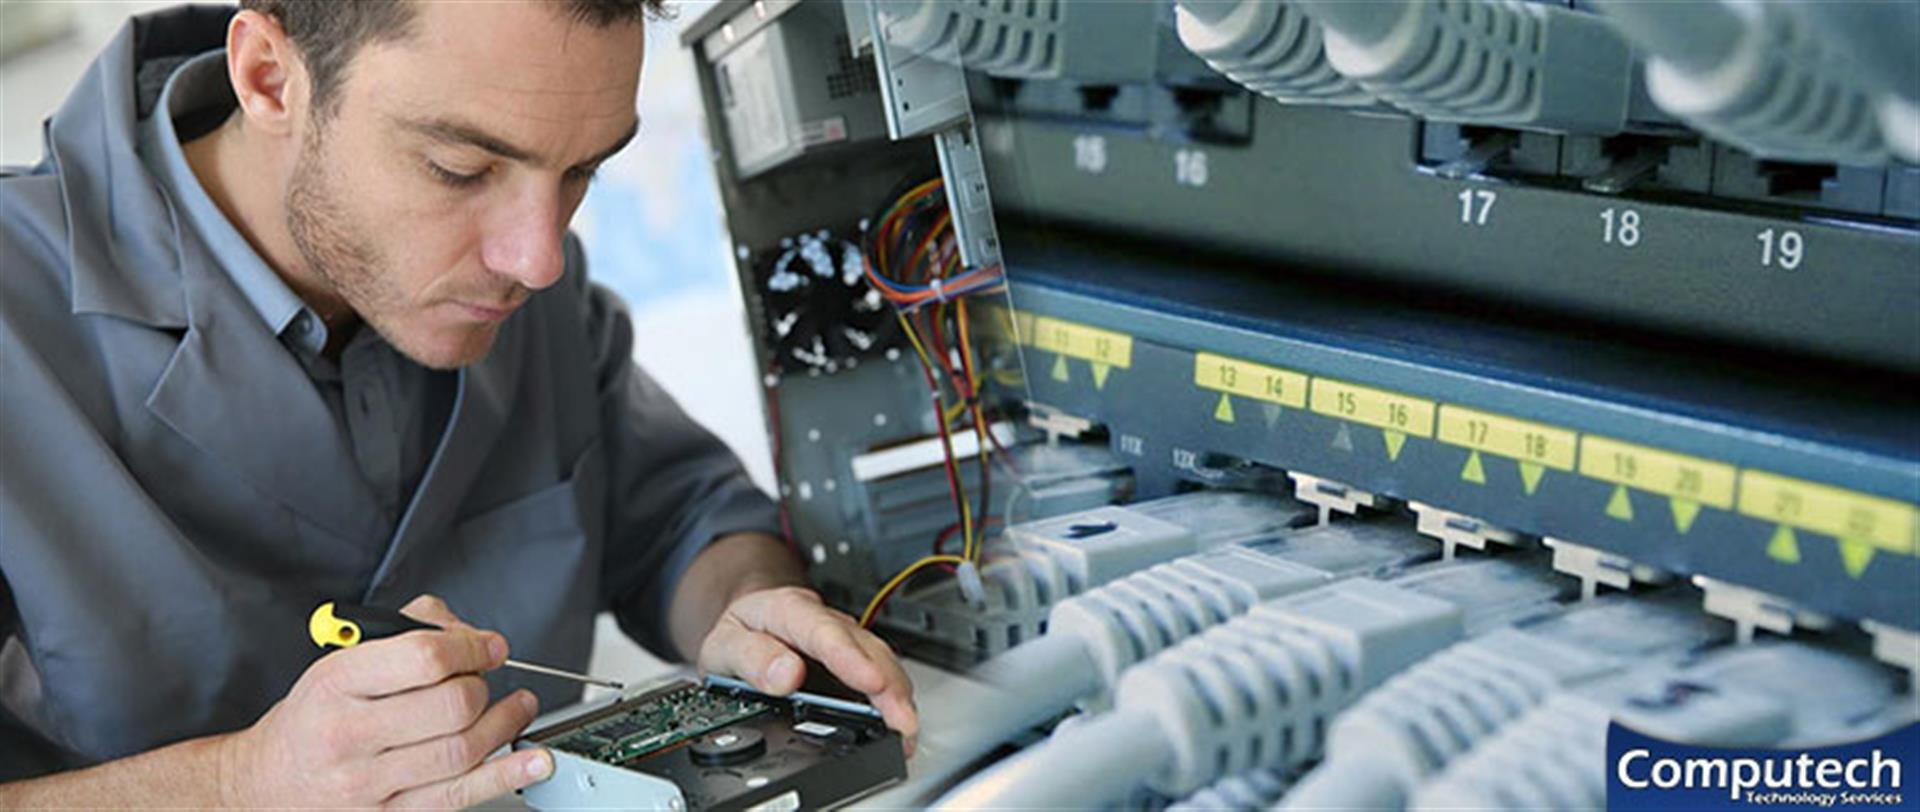 Salem Virginia Onsite Computer PC & Printer Repairs, Network, Voice & Data Cabling Services